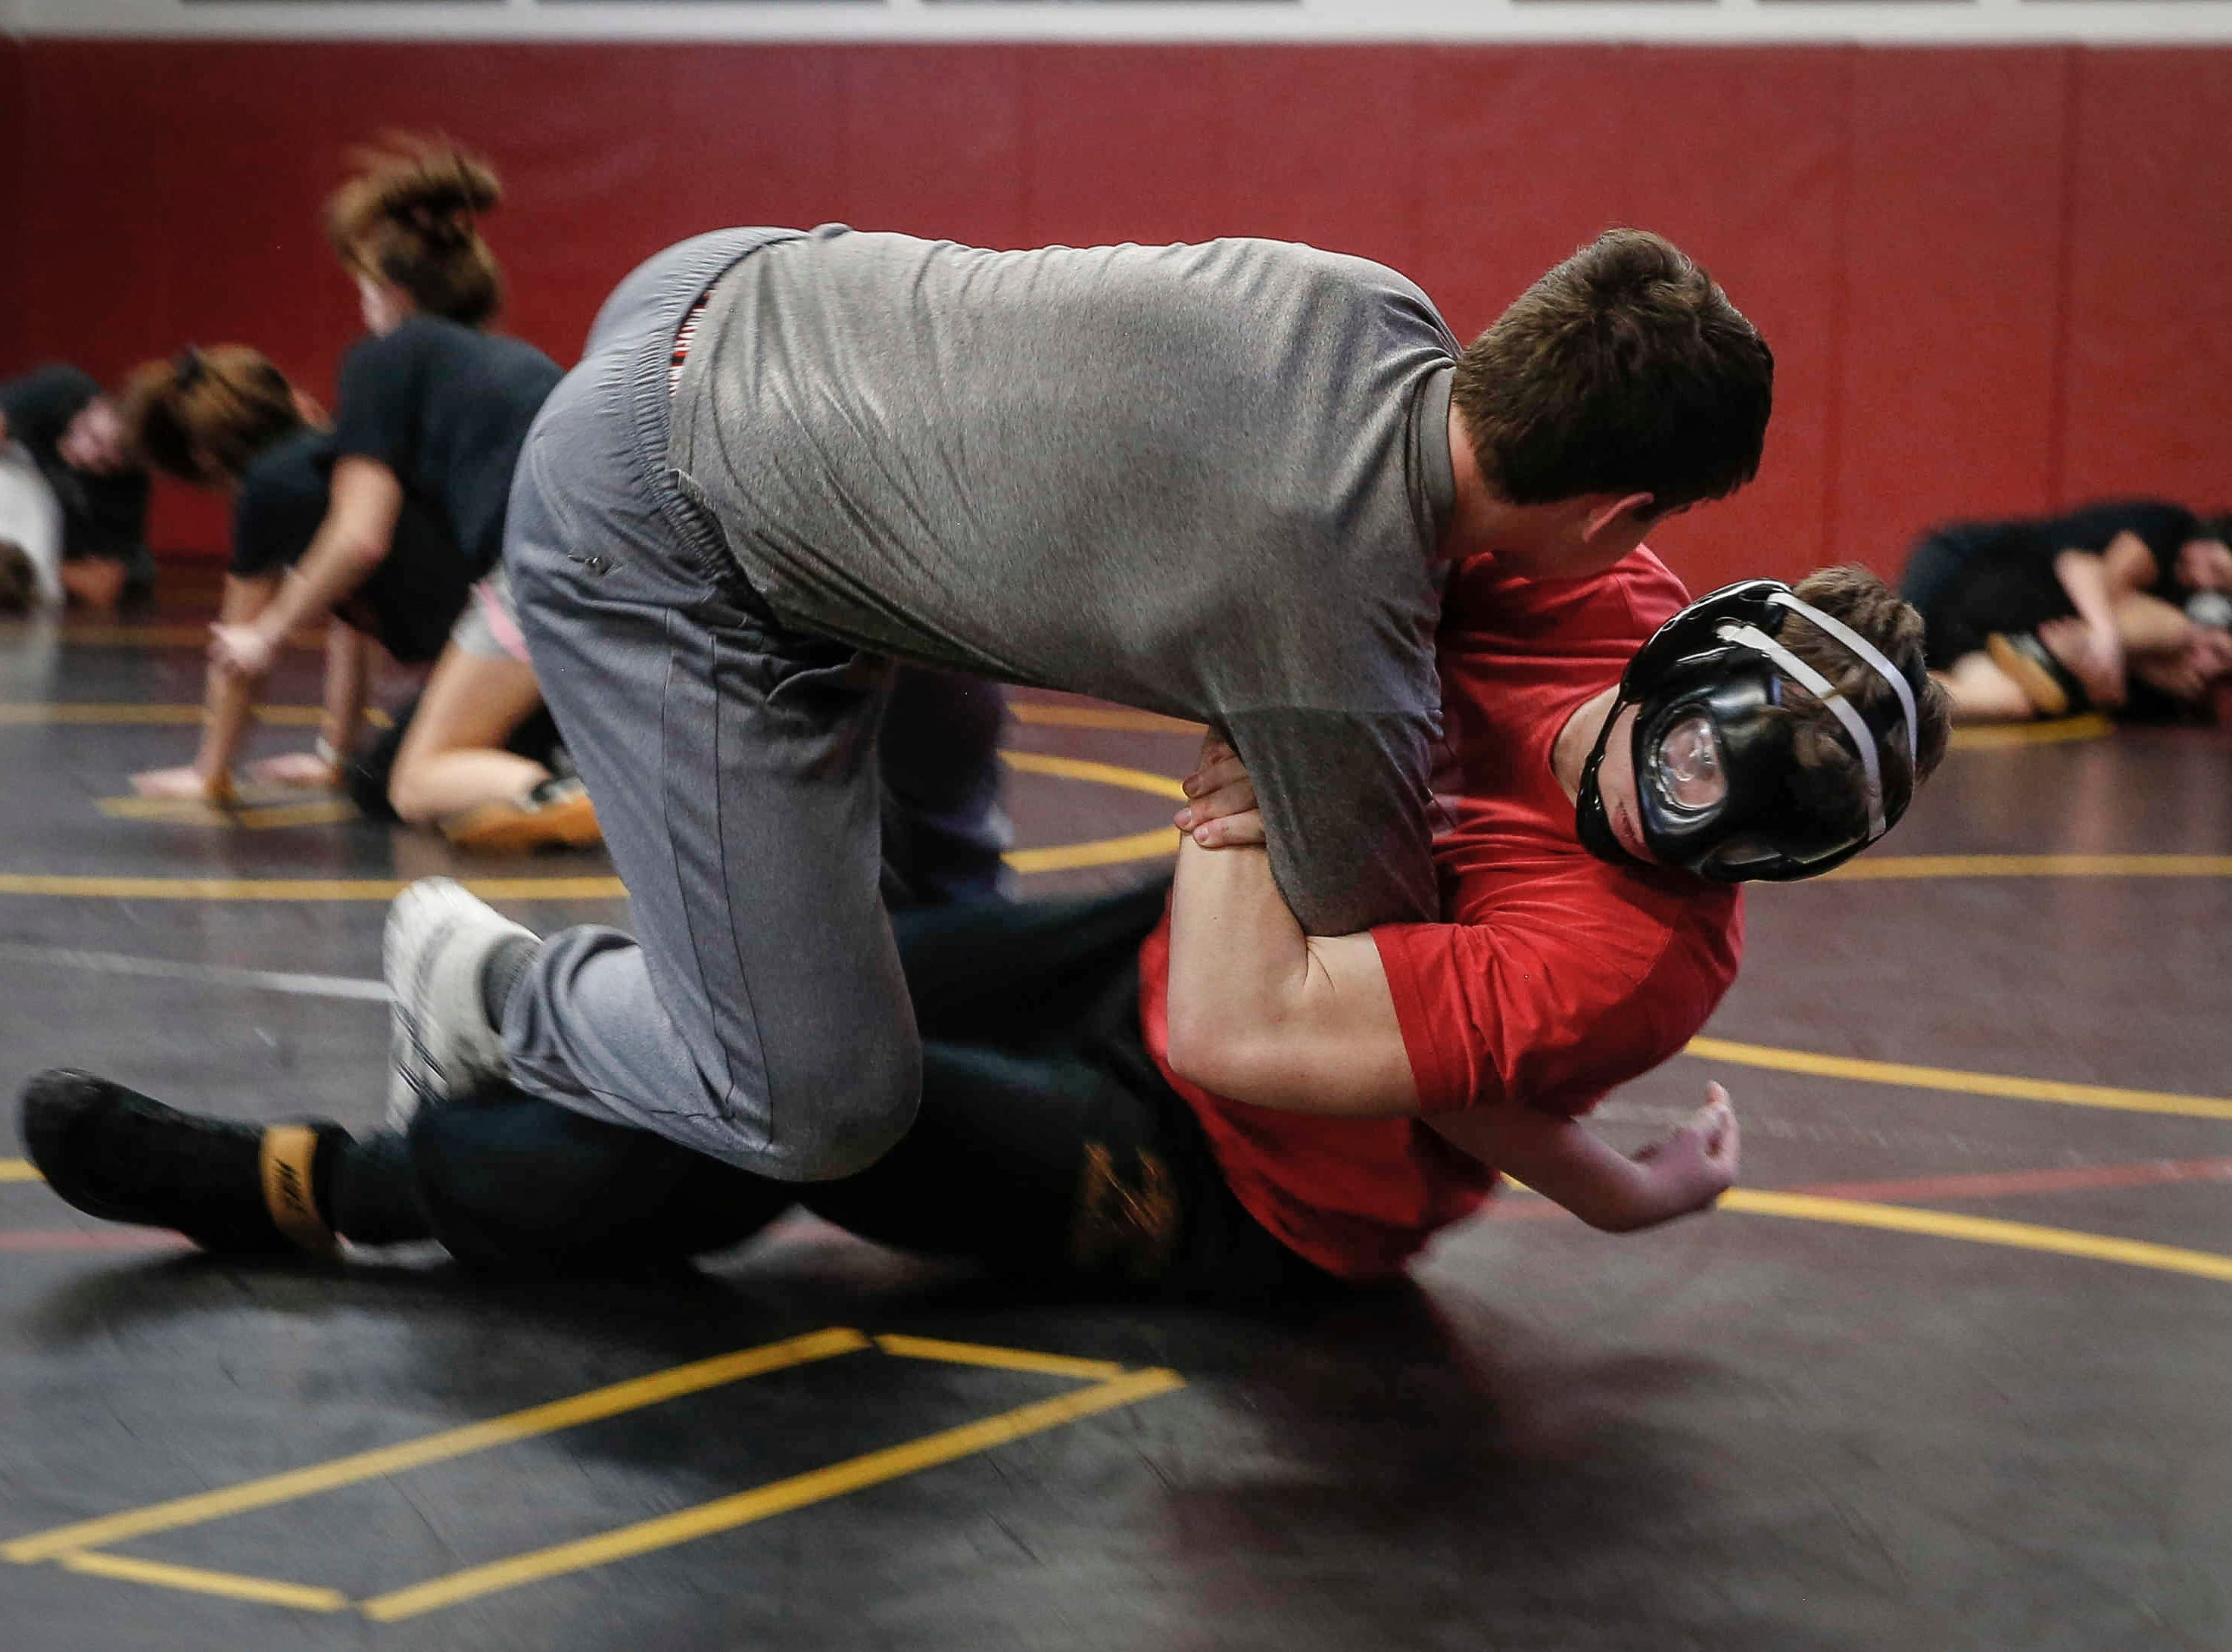 Denver sophomore Cam Krueger runs drills during wrestling practice at Denver High School in Denver on Tuesday, Jan. 15, 2019. Krueger hasn't let the fact that he is legally blind step in the way of his passion for wrestling.